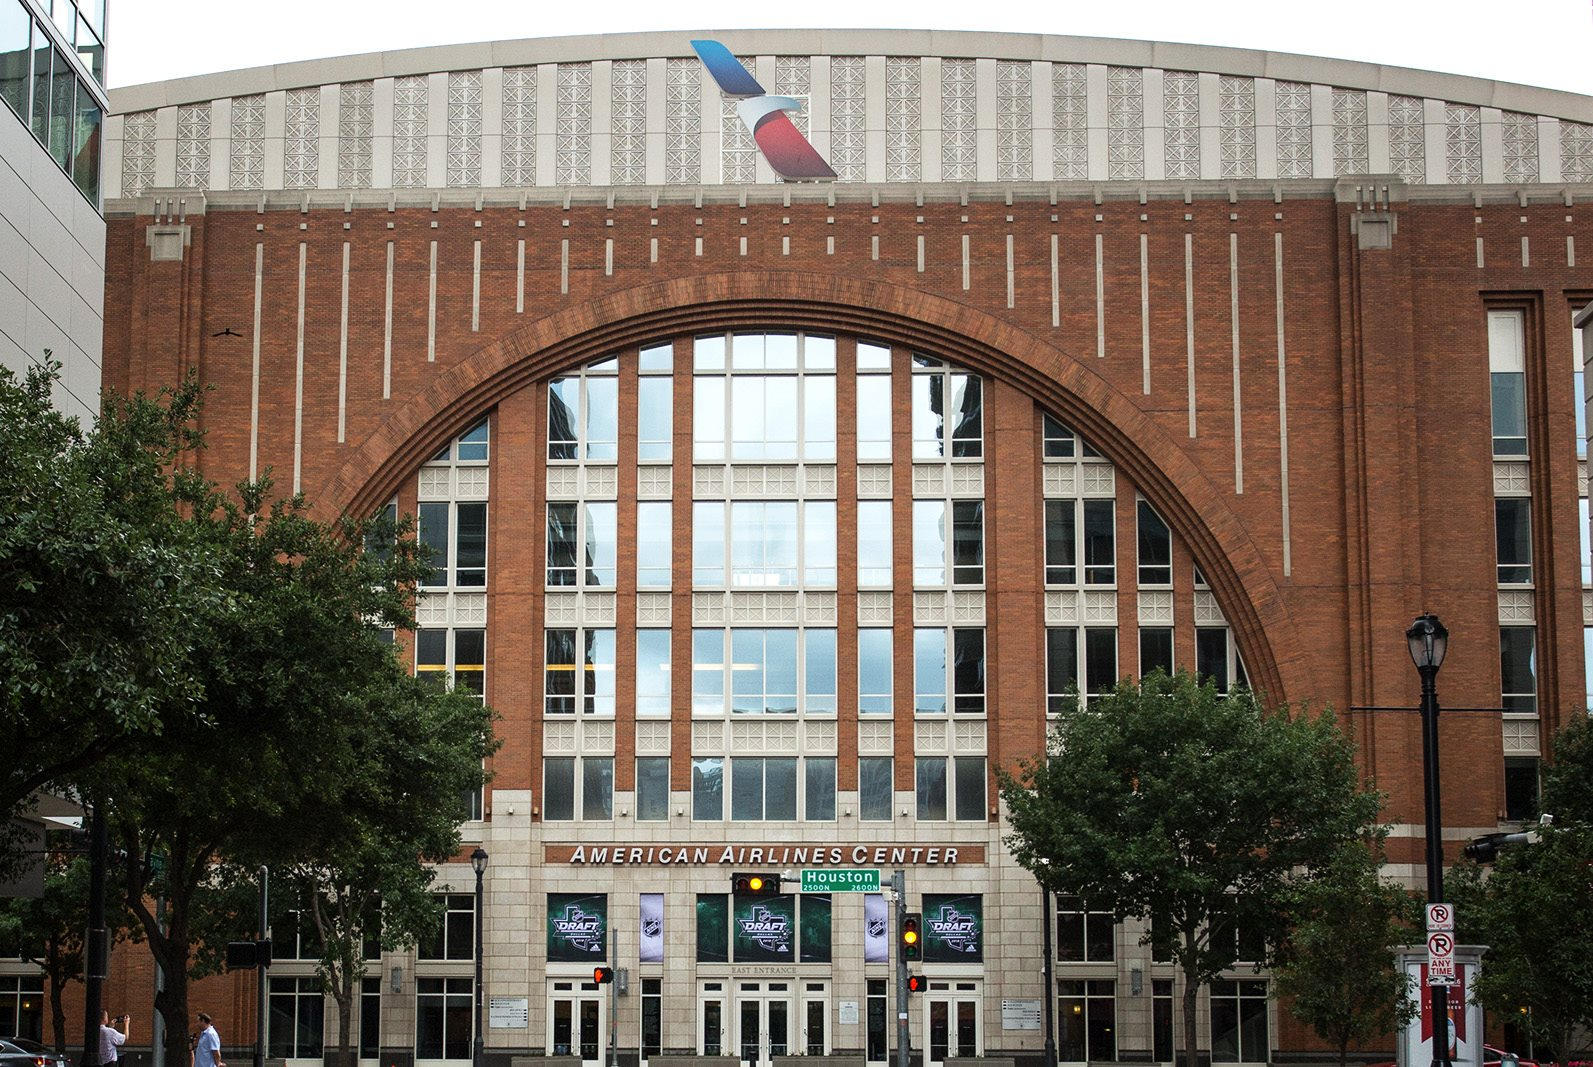 Enjoy a Concert or Game at the AAC at Trianon by Windsor, Dallas, TX